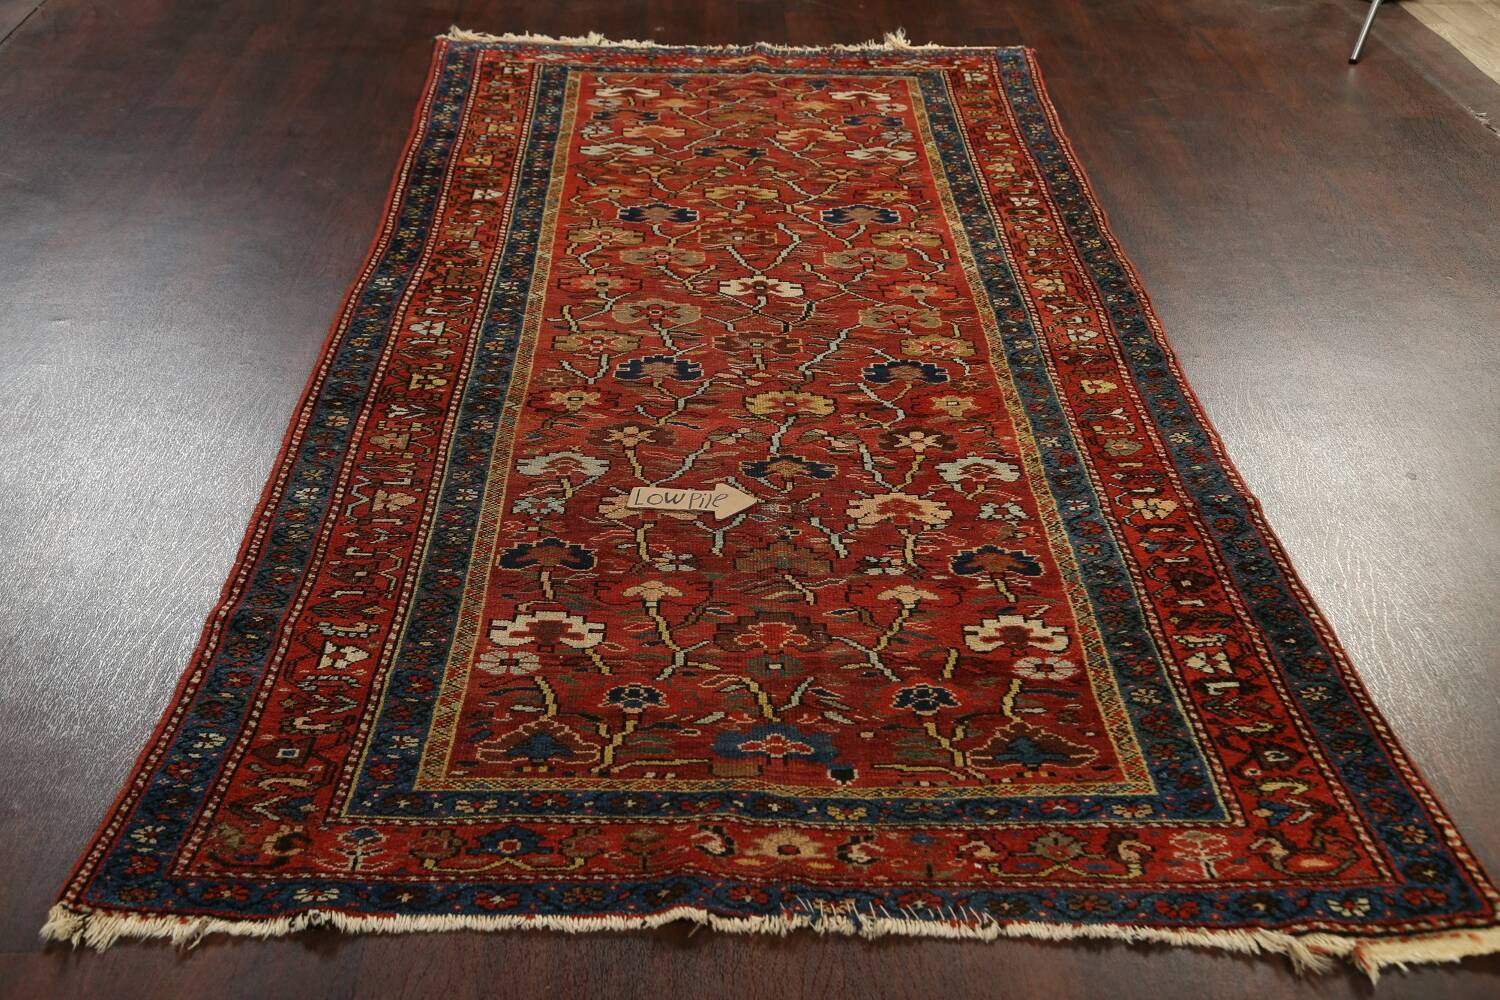 Pre-1900 Antique Vegetable Dye Sultanabad Persian Area Rug 5x10 image 14